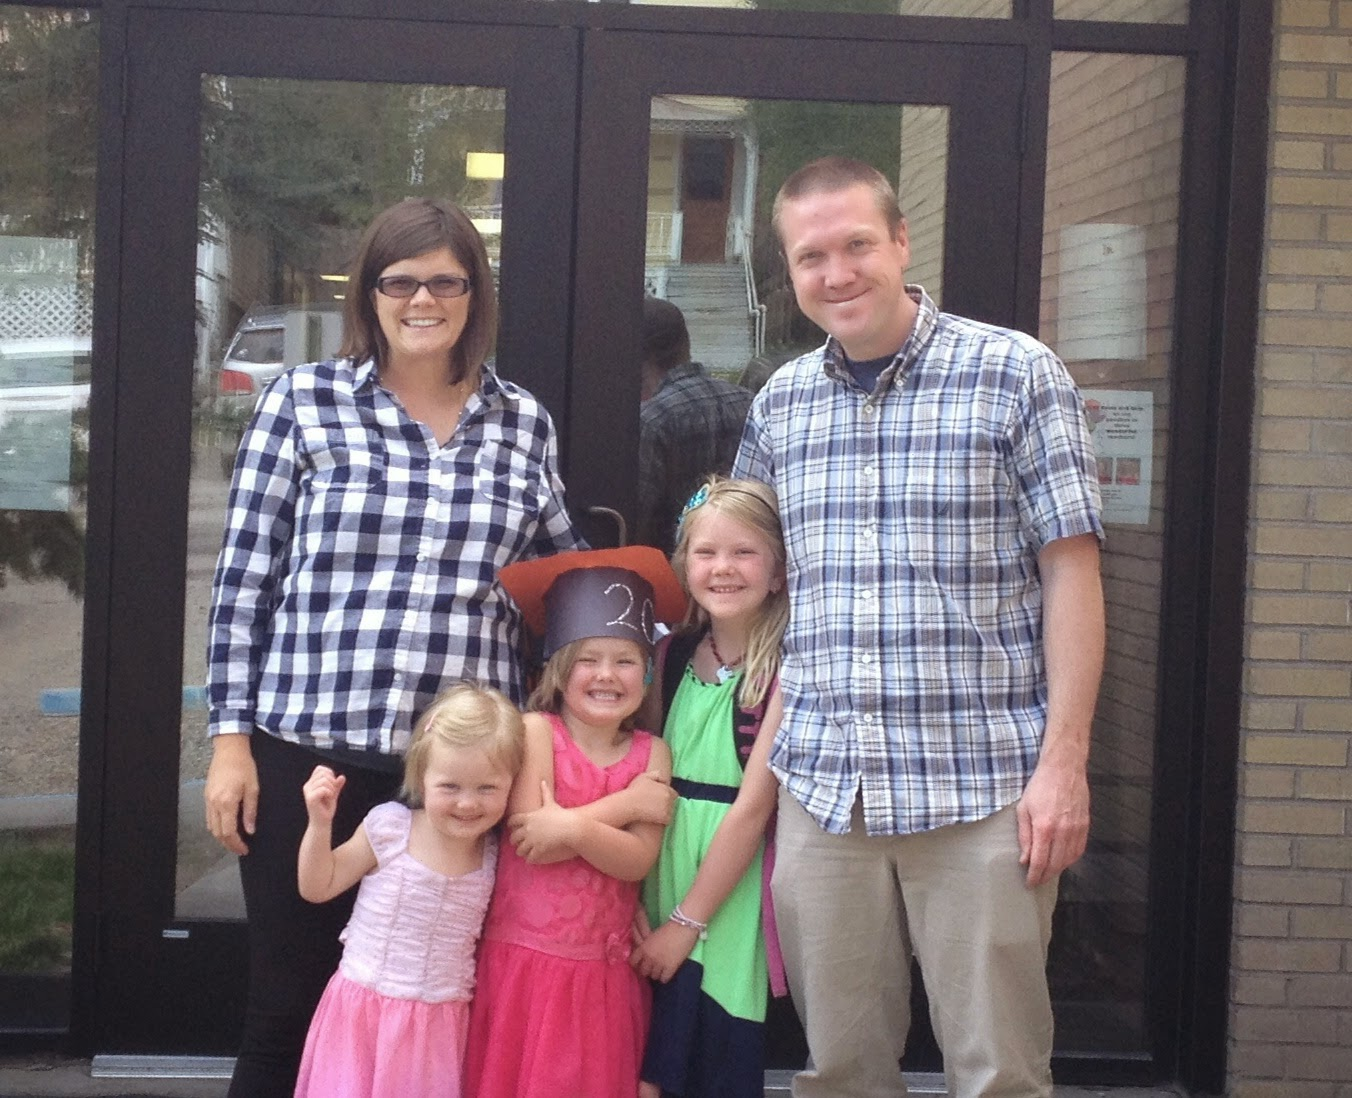 Family Pic outside Ouray School. We'll miss this happy place!